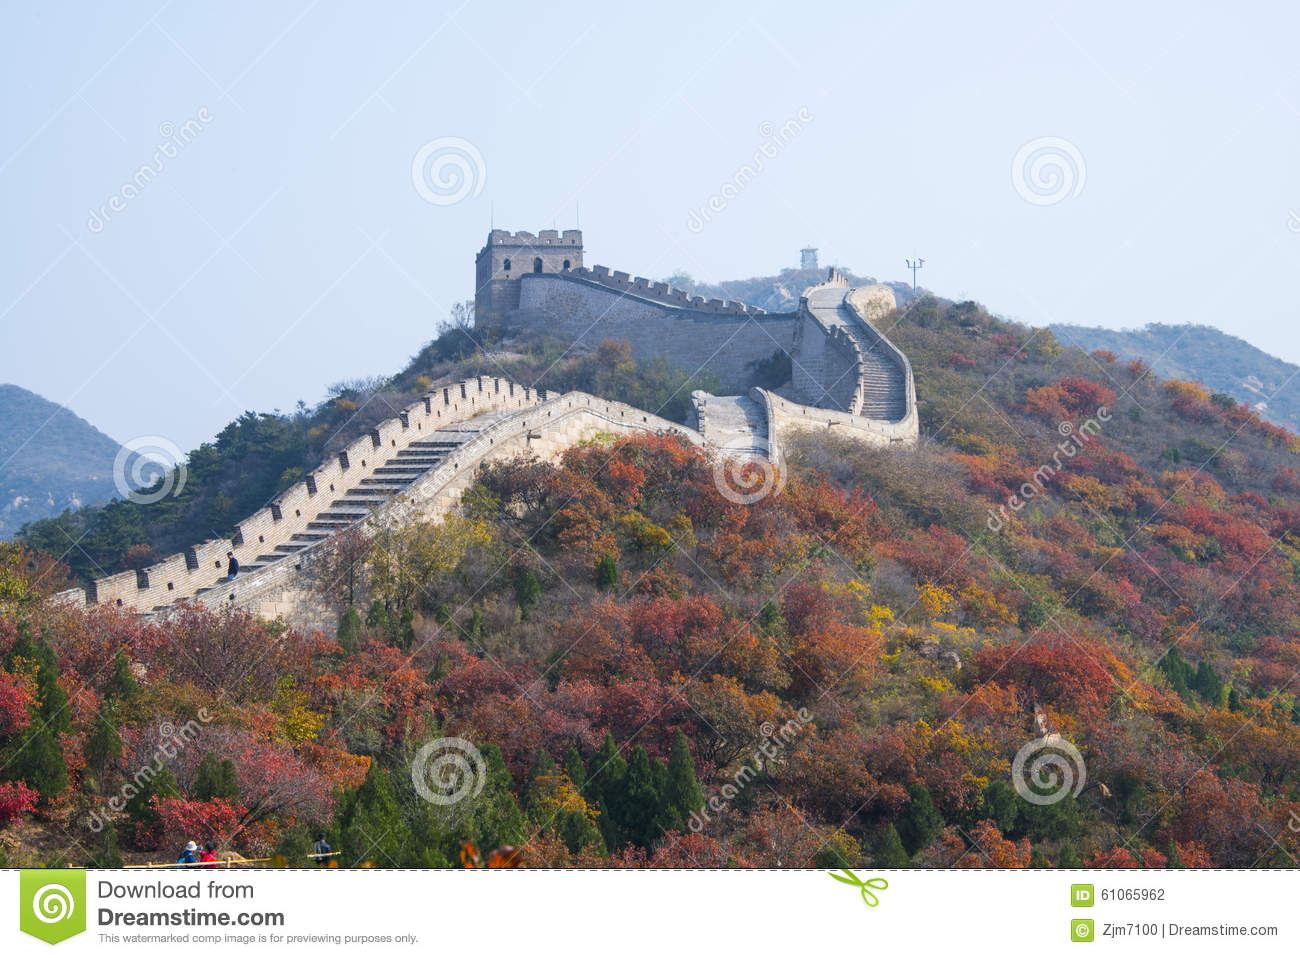 the great encounter of china and The great encounter of china and the west 1500-1800 the chinese and european cultures came together for the first time in the fifteenth century when great chinese.